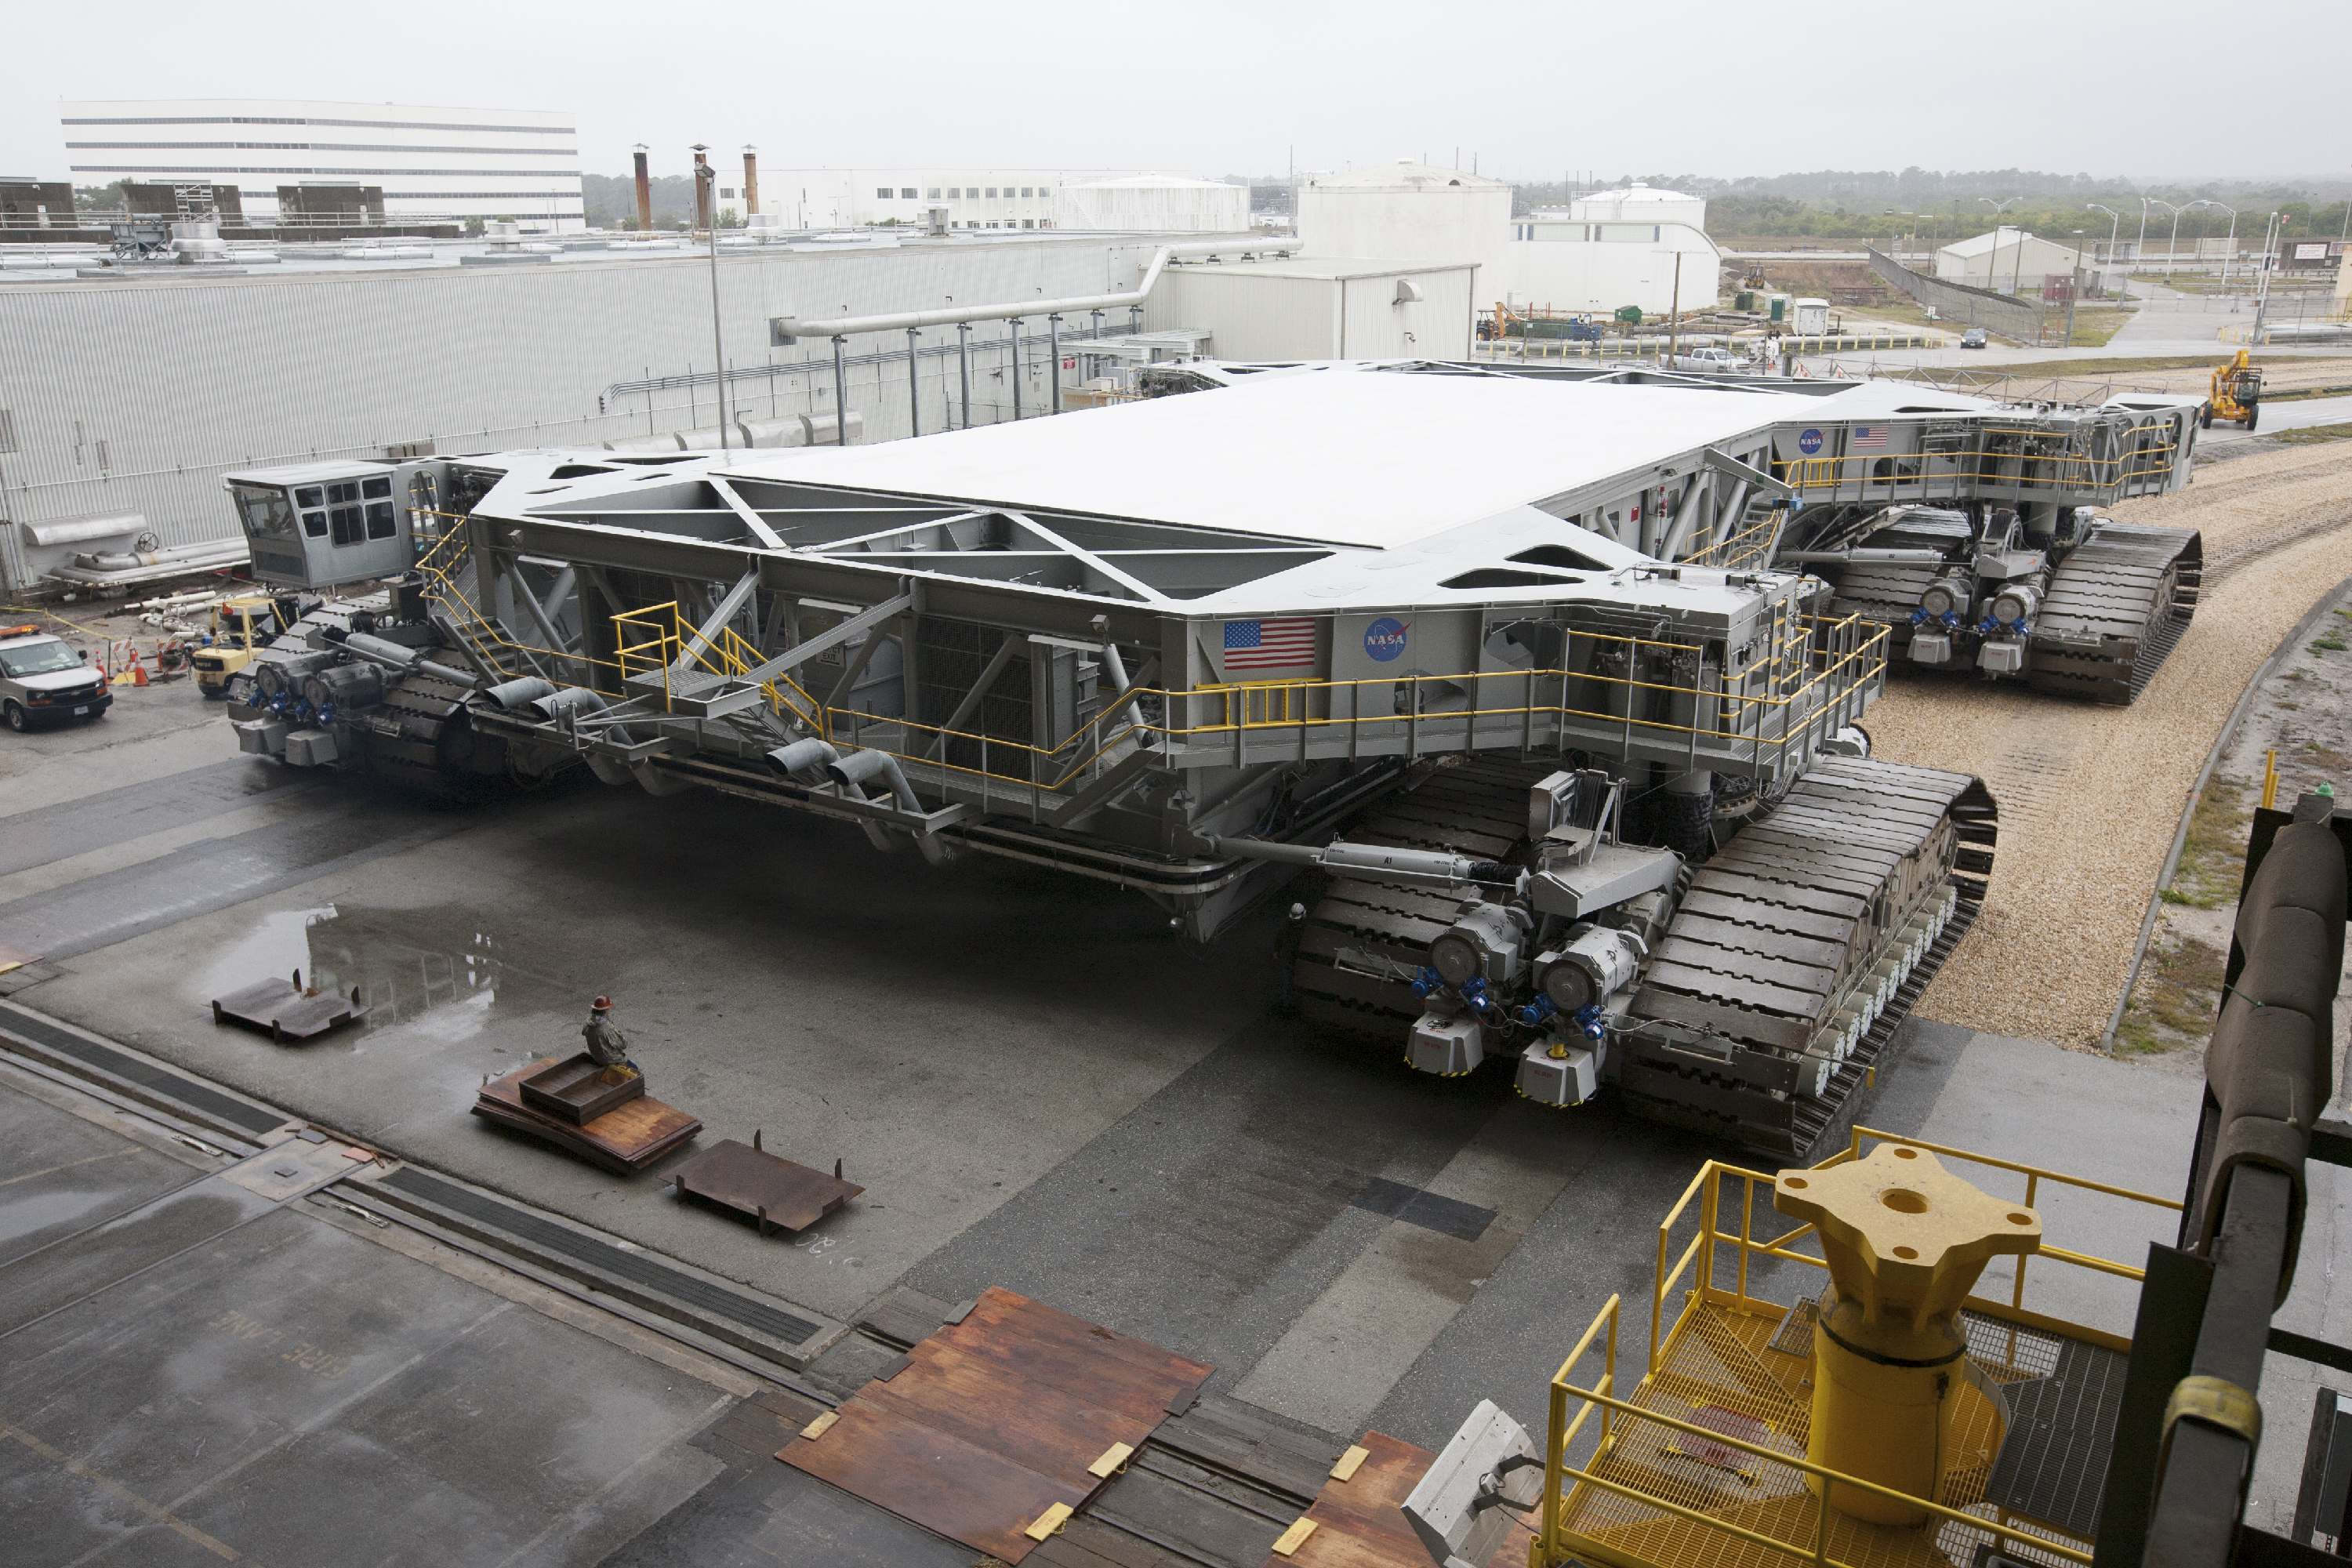 [SLS] Apollo-era crawler transporter upgrades ...